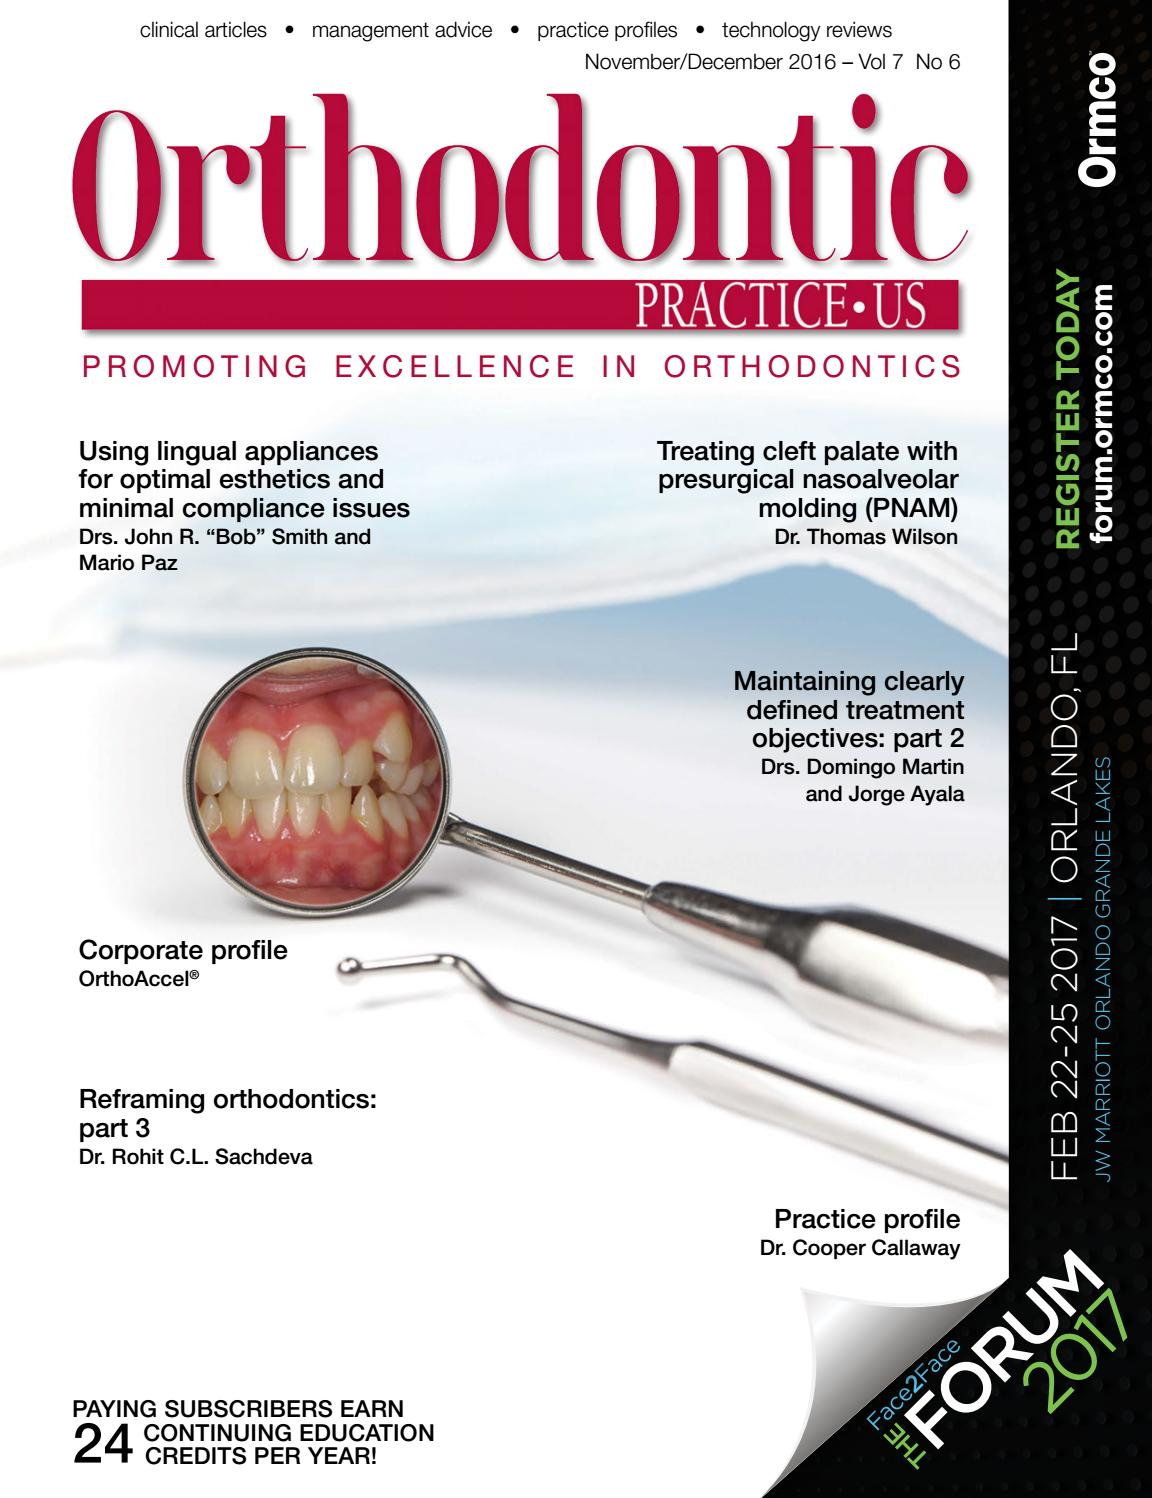 Orthodontic Practice US November-December 2016, Vol 7 No 6 by